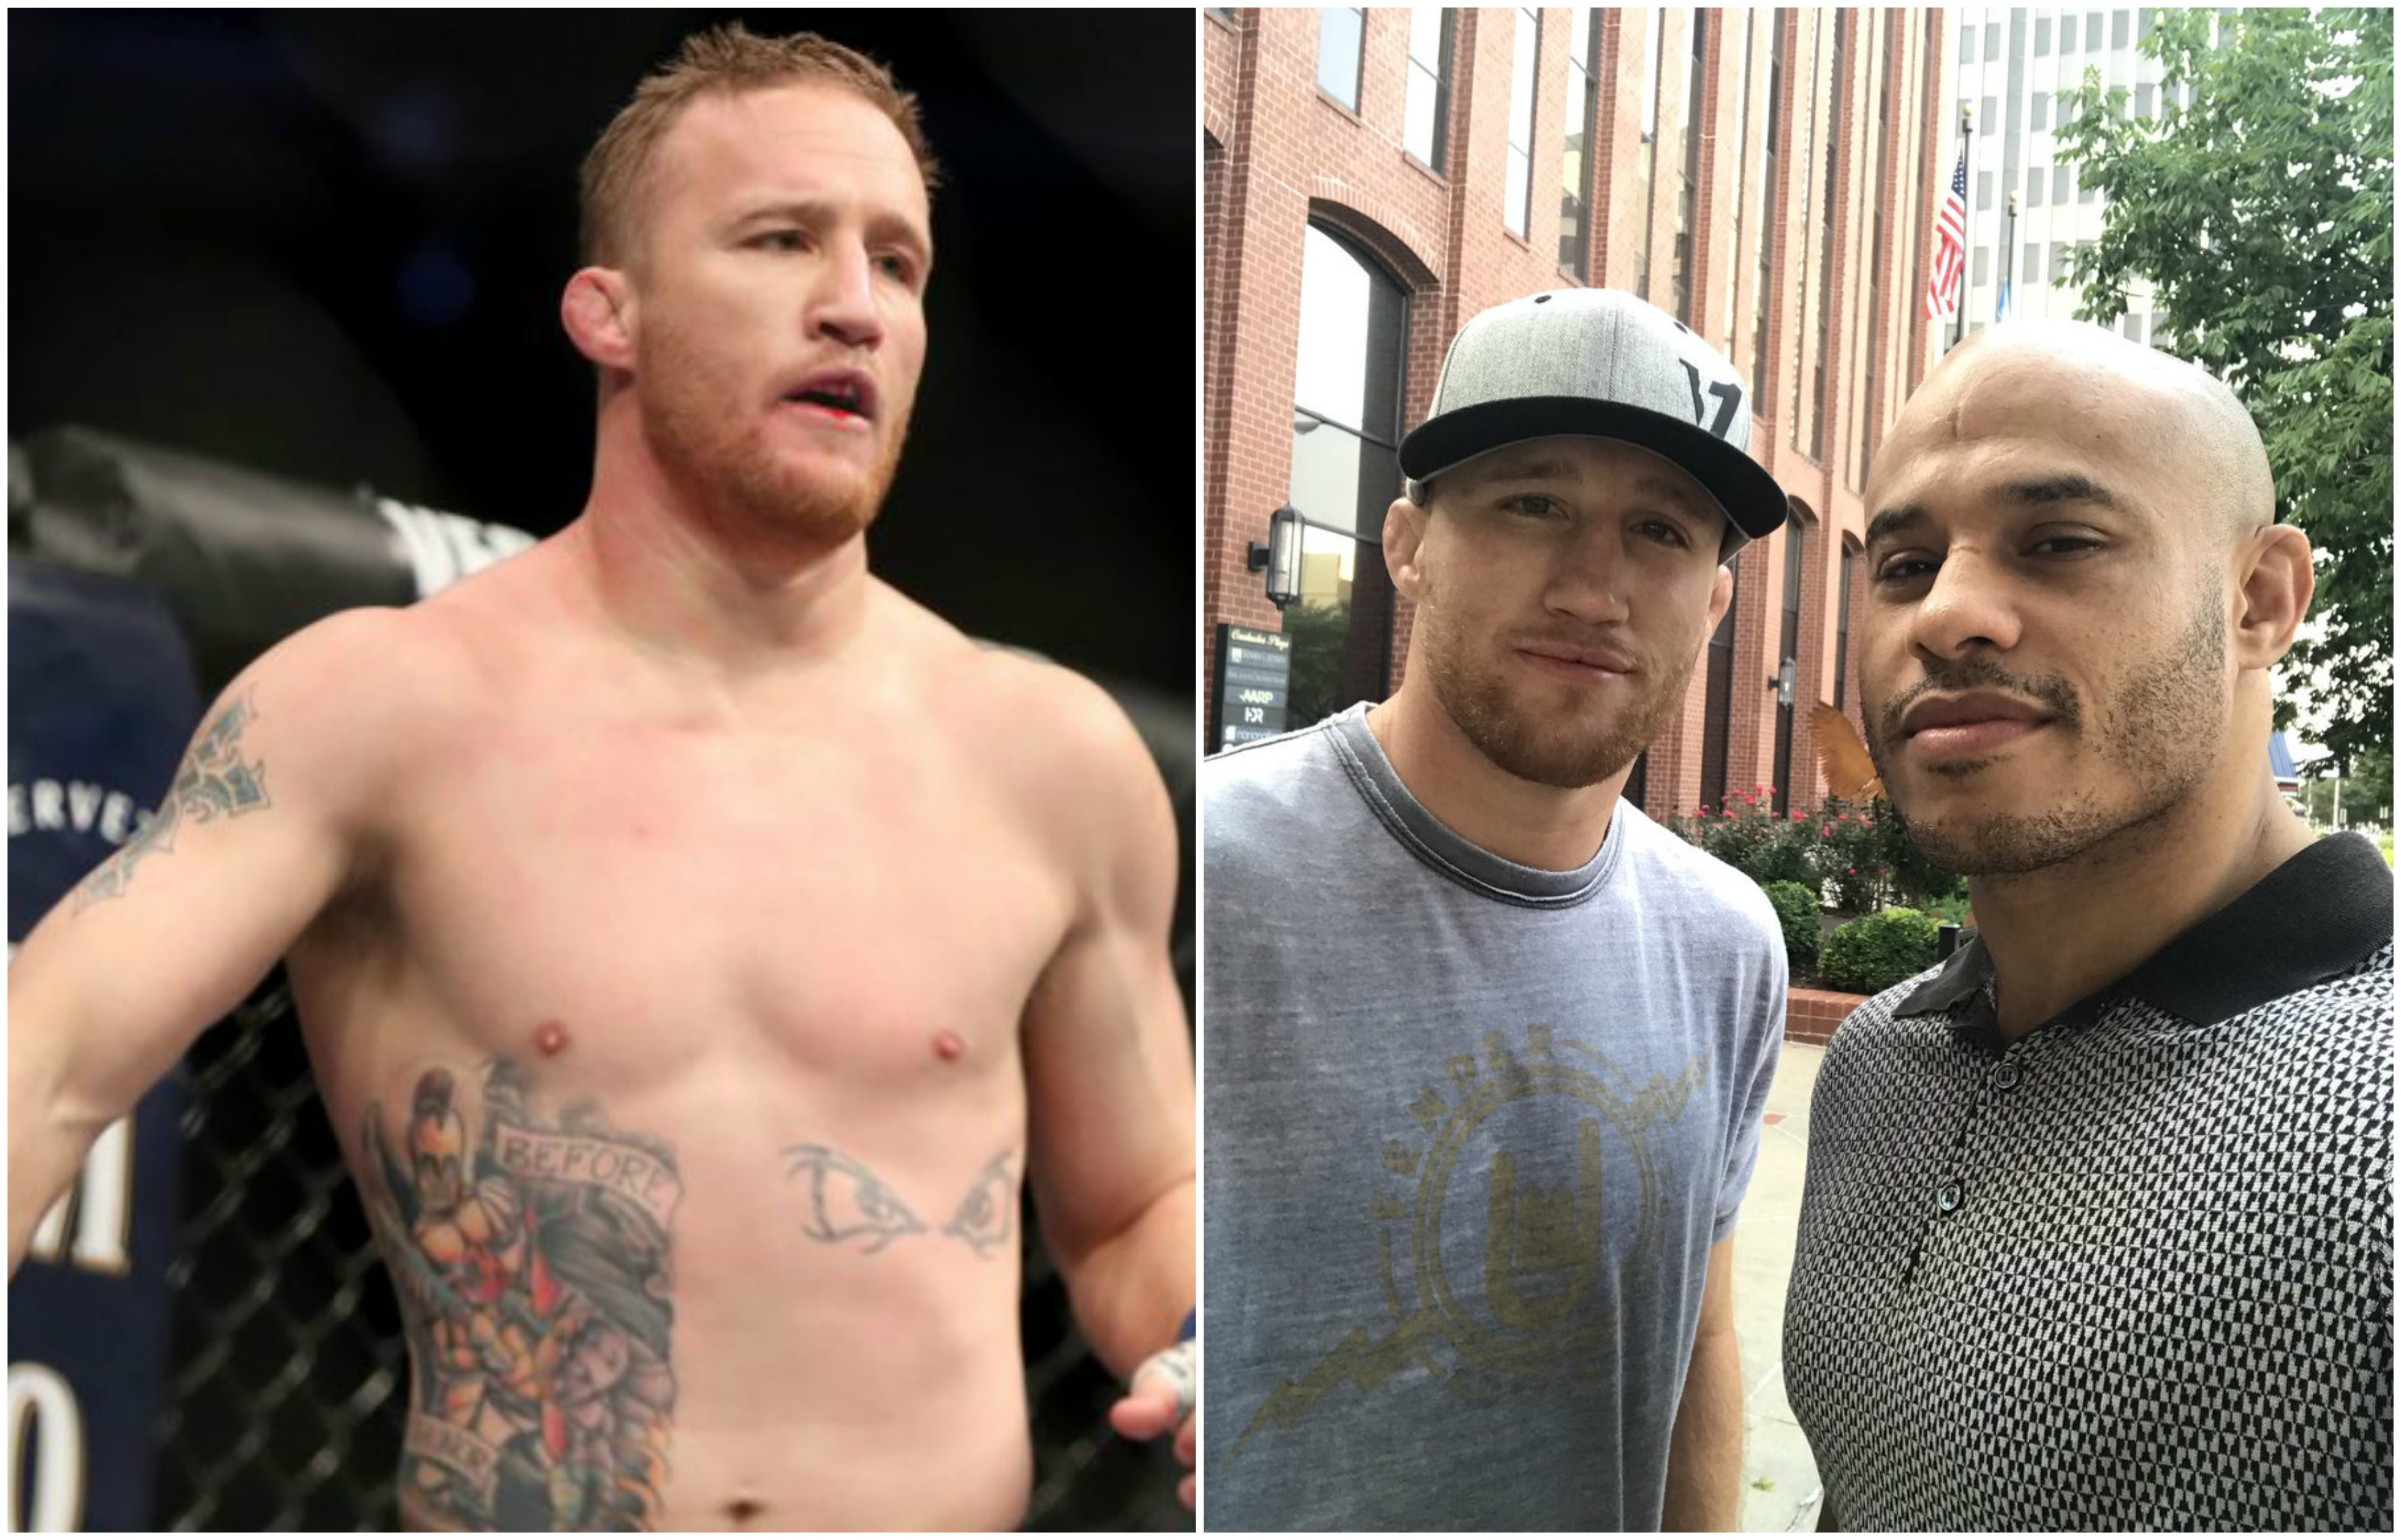 UFC News: Justin Gaethje reveals Ali Abdelaziz didn't take a dollar from him after the Cowboy fight as he was unhappy with the matchmaking - Gaethje